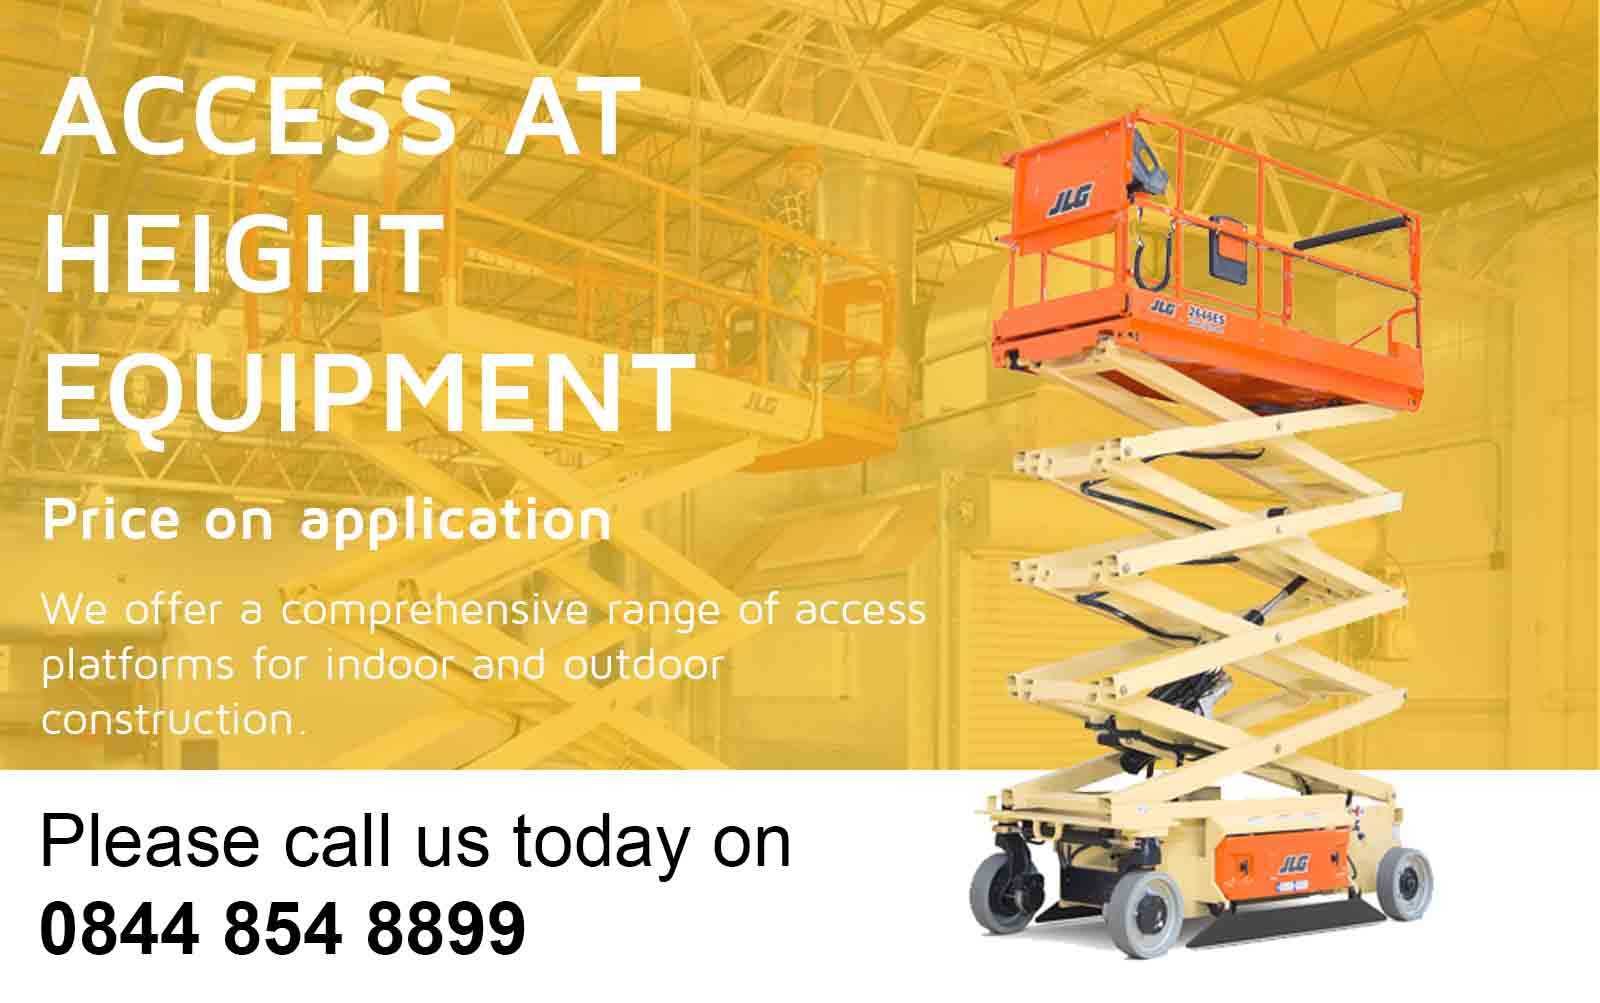 JLG Access Height Equipment for sale